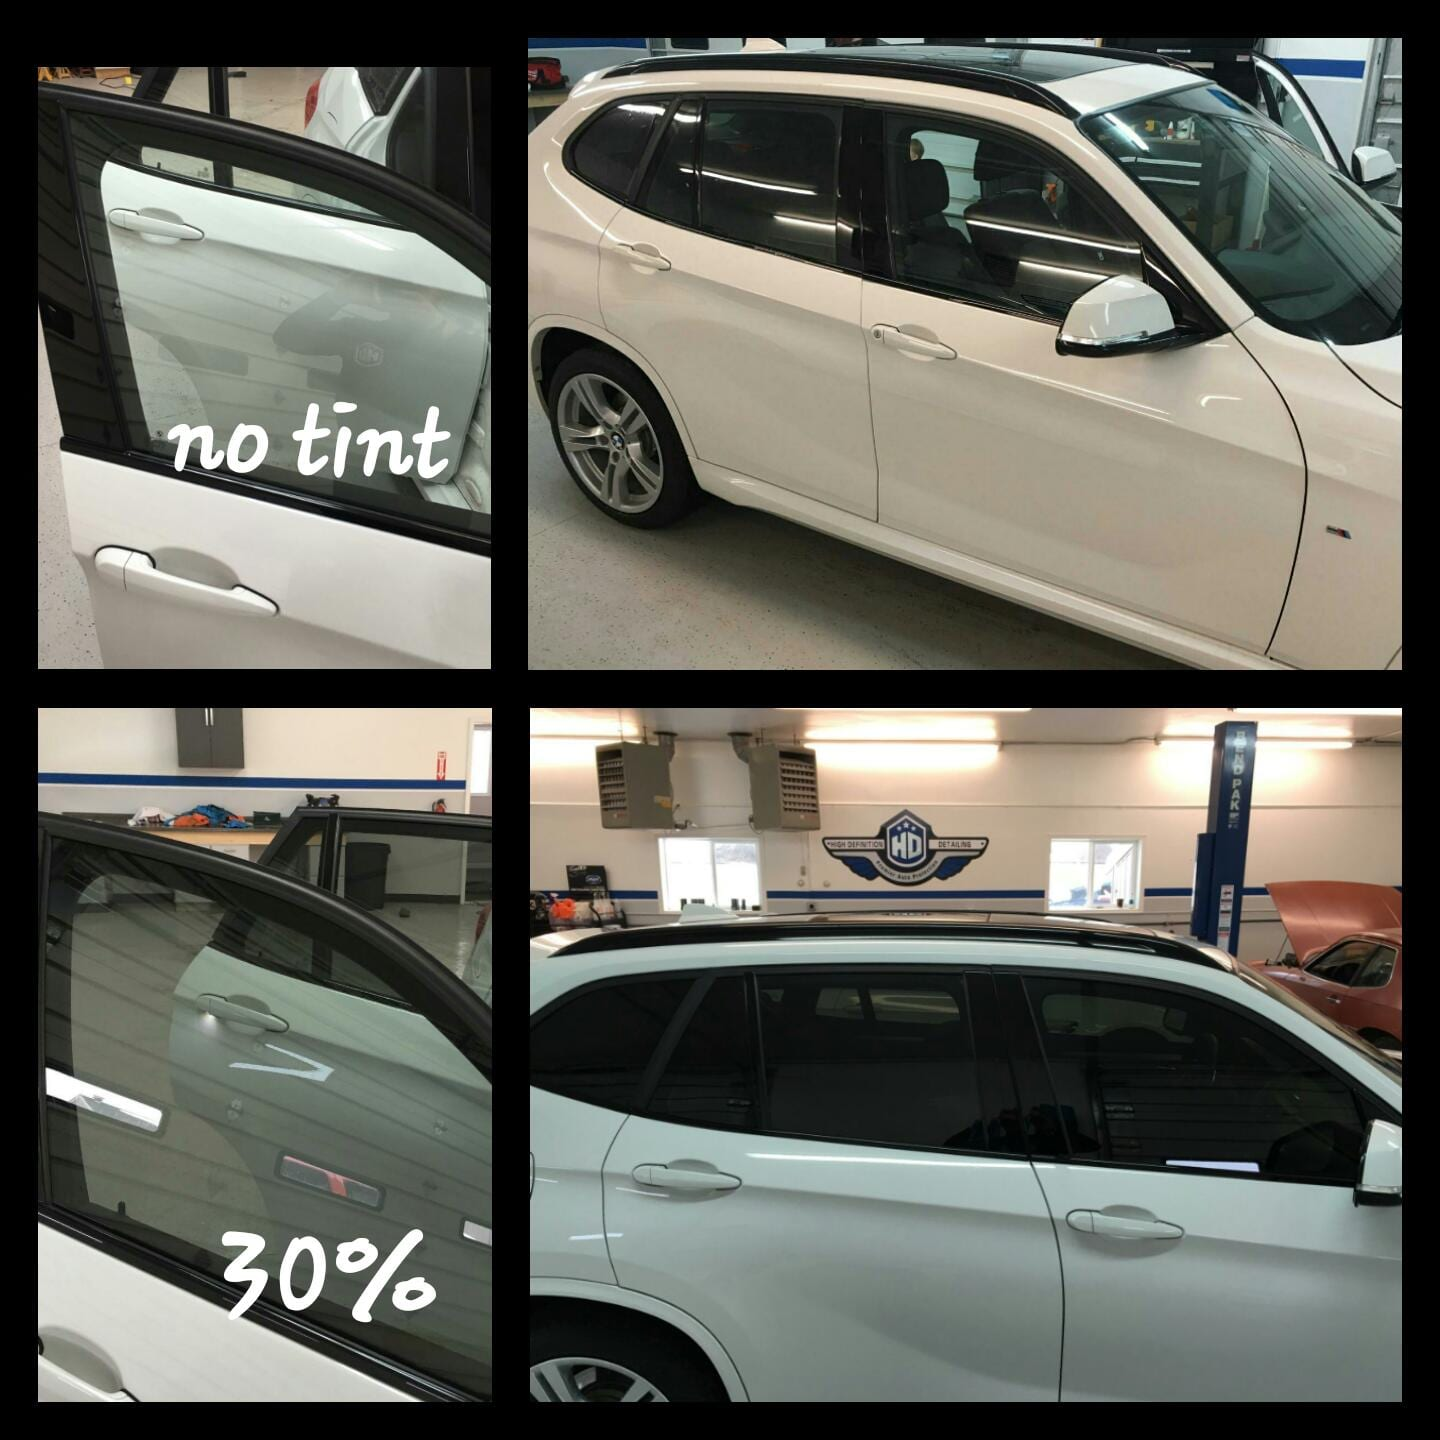 High quality window tinting to fit your needs for 20 window tint at night